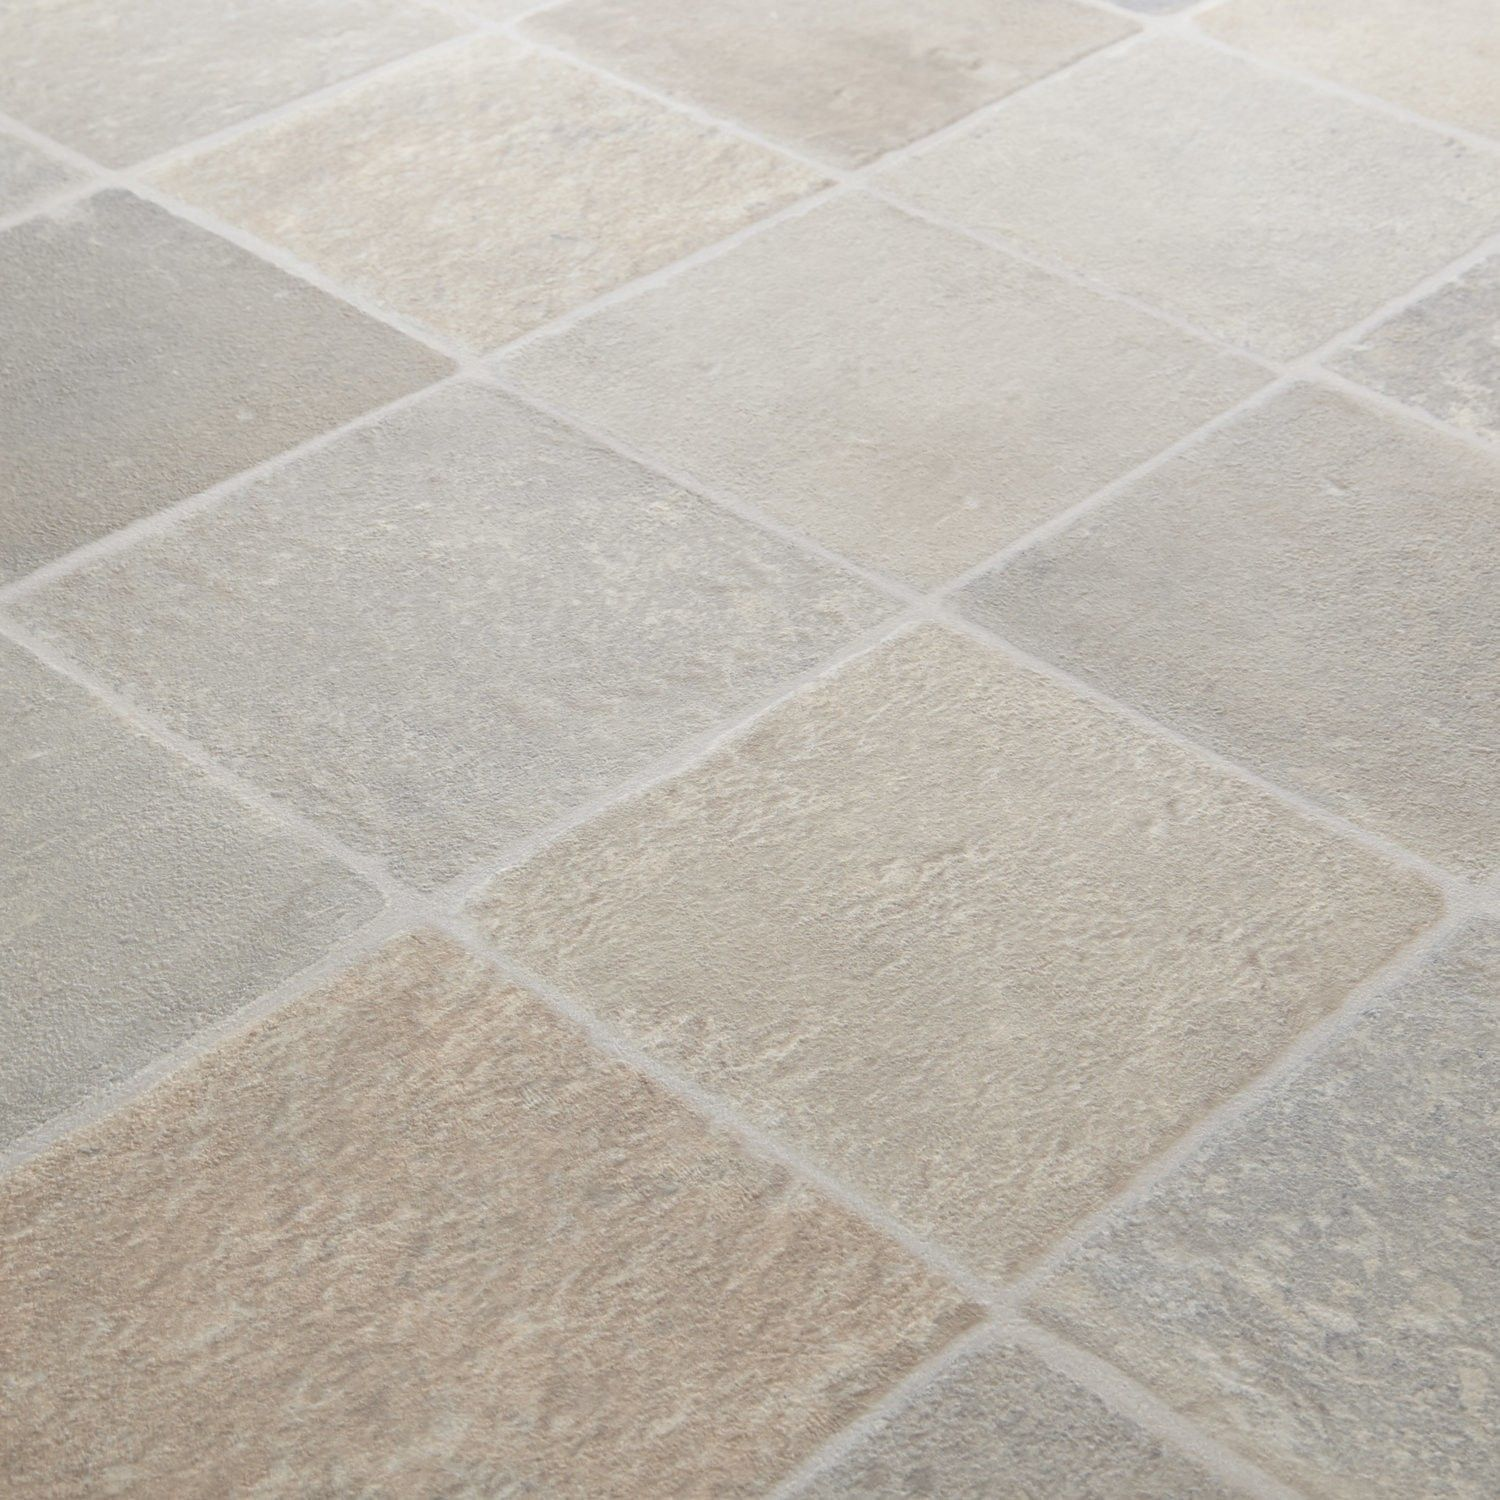 Kitchen Floor Stone Tiles 1199 Rhino Classic Cottage Beige Grey Stone Tile Effect Vinyl